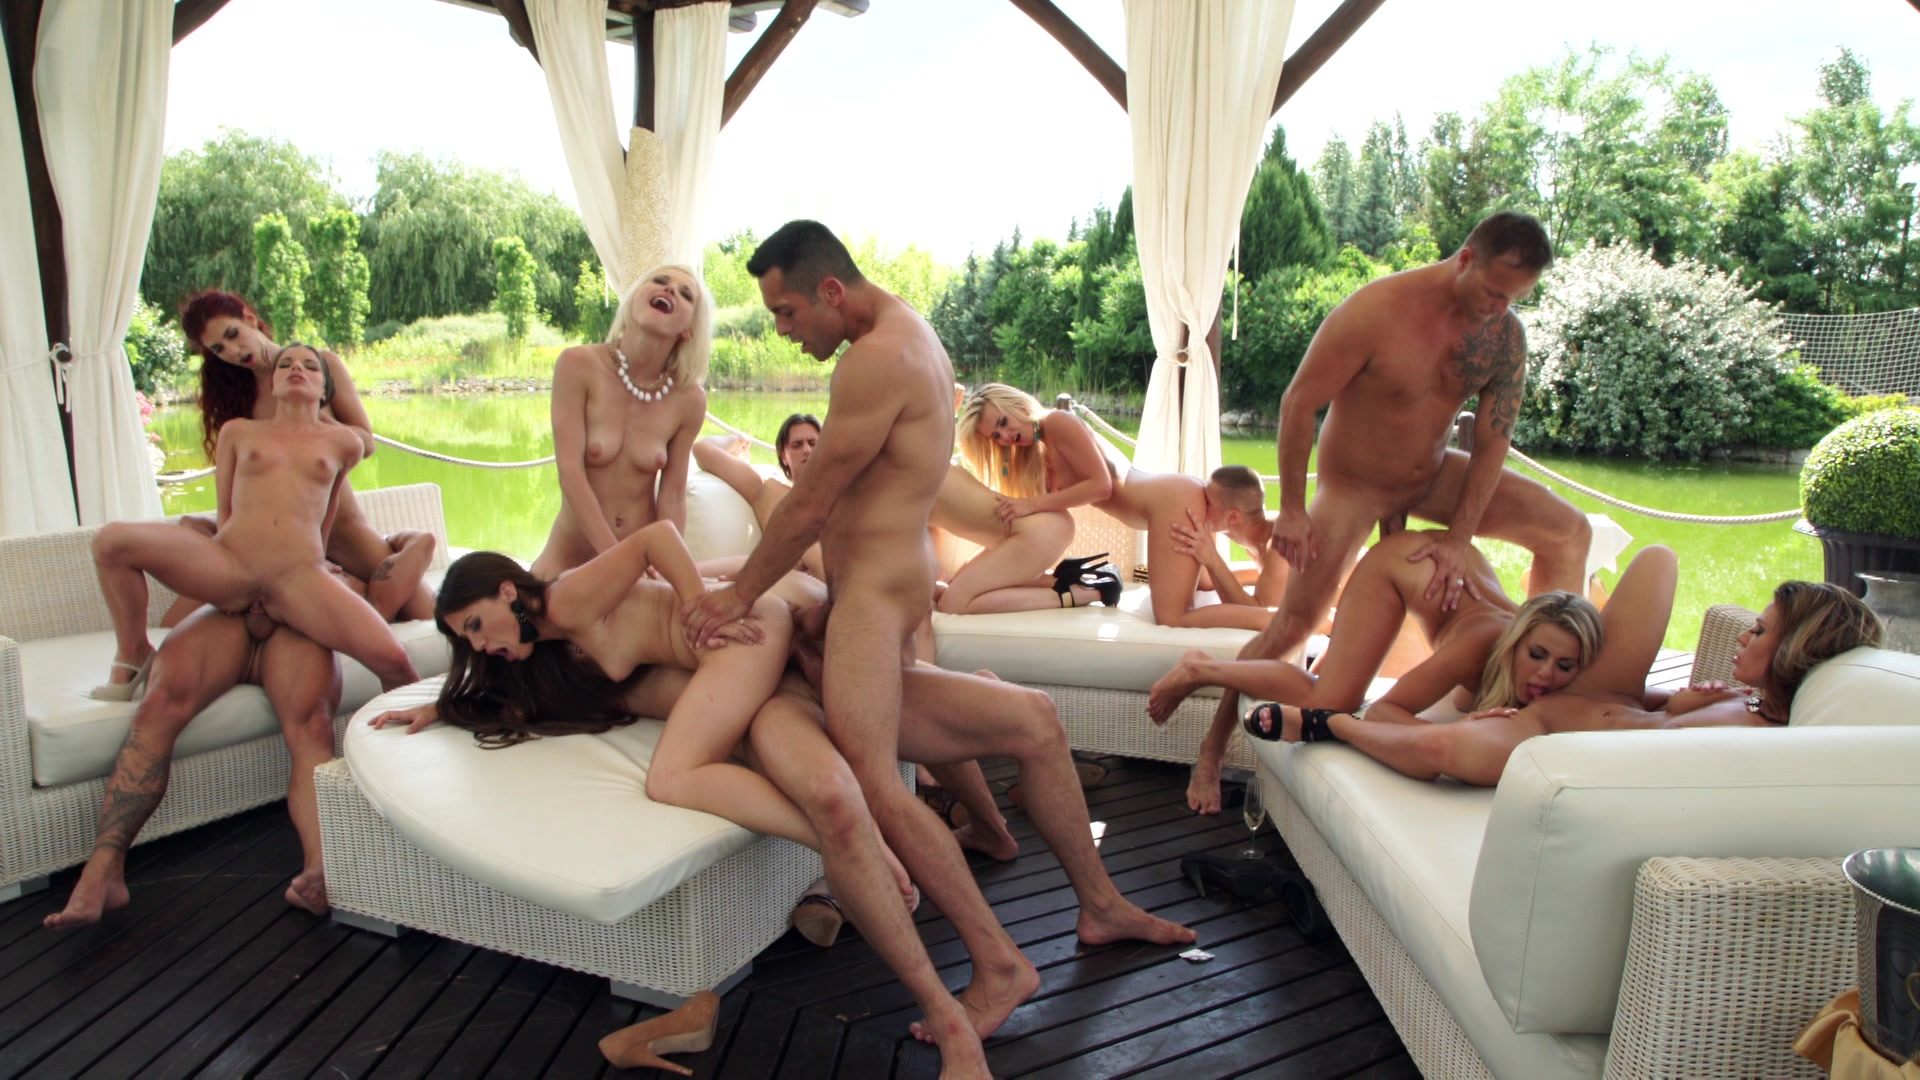 Mass orgy video — pic 1